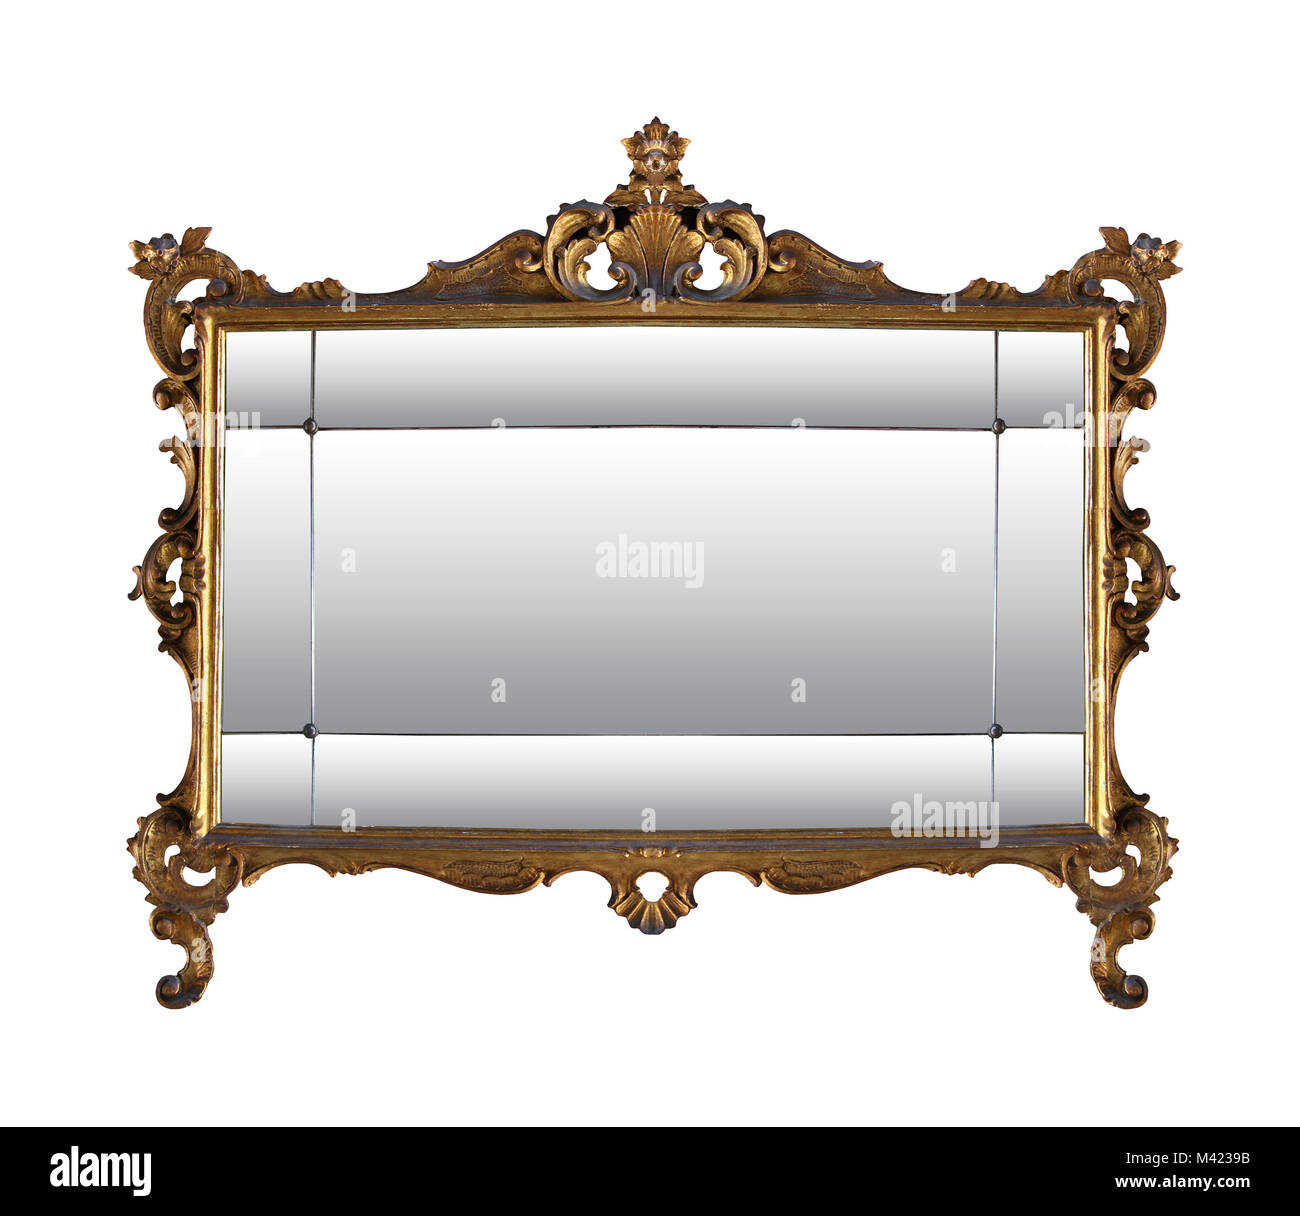 Gold Mirror Frame Stock Photos & Gold Mirror Frame Stock Images - Alamy